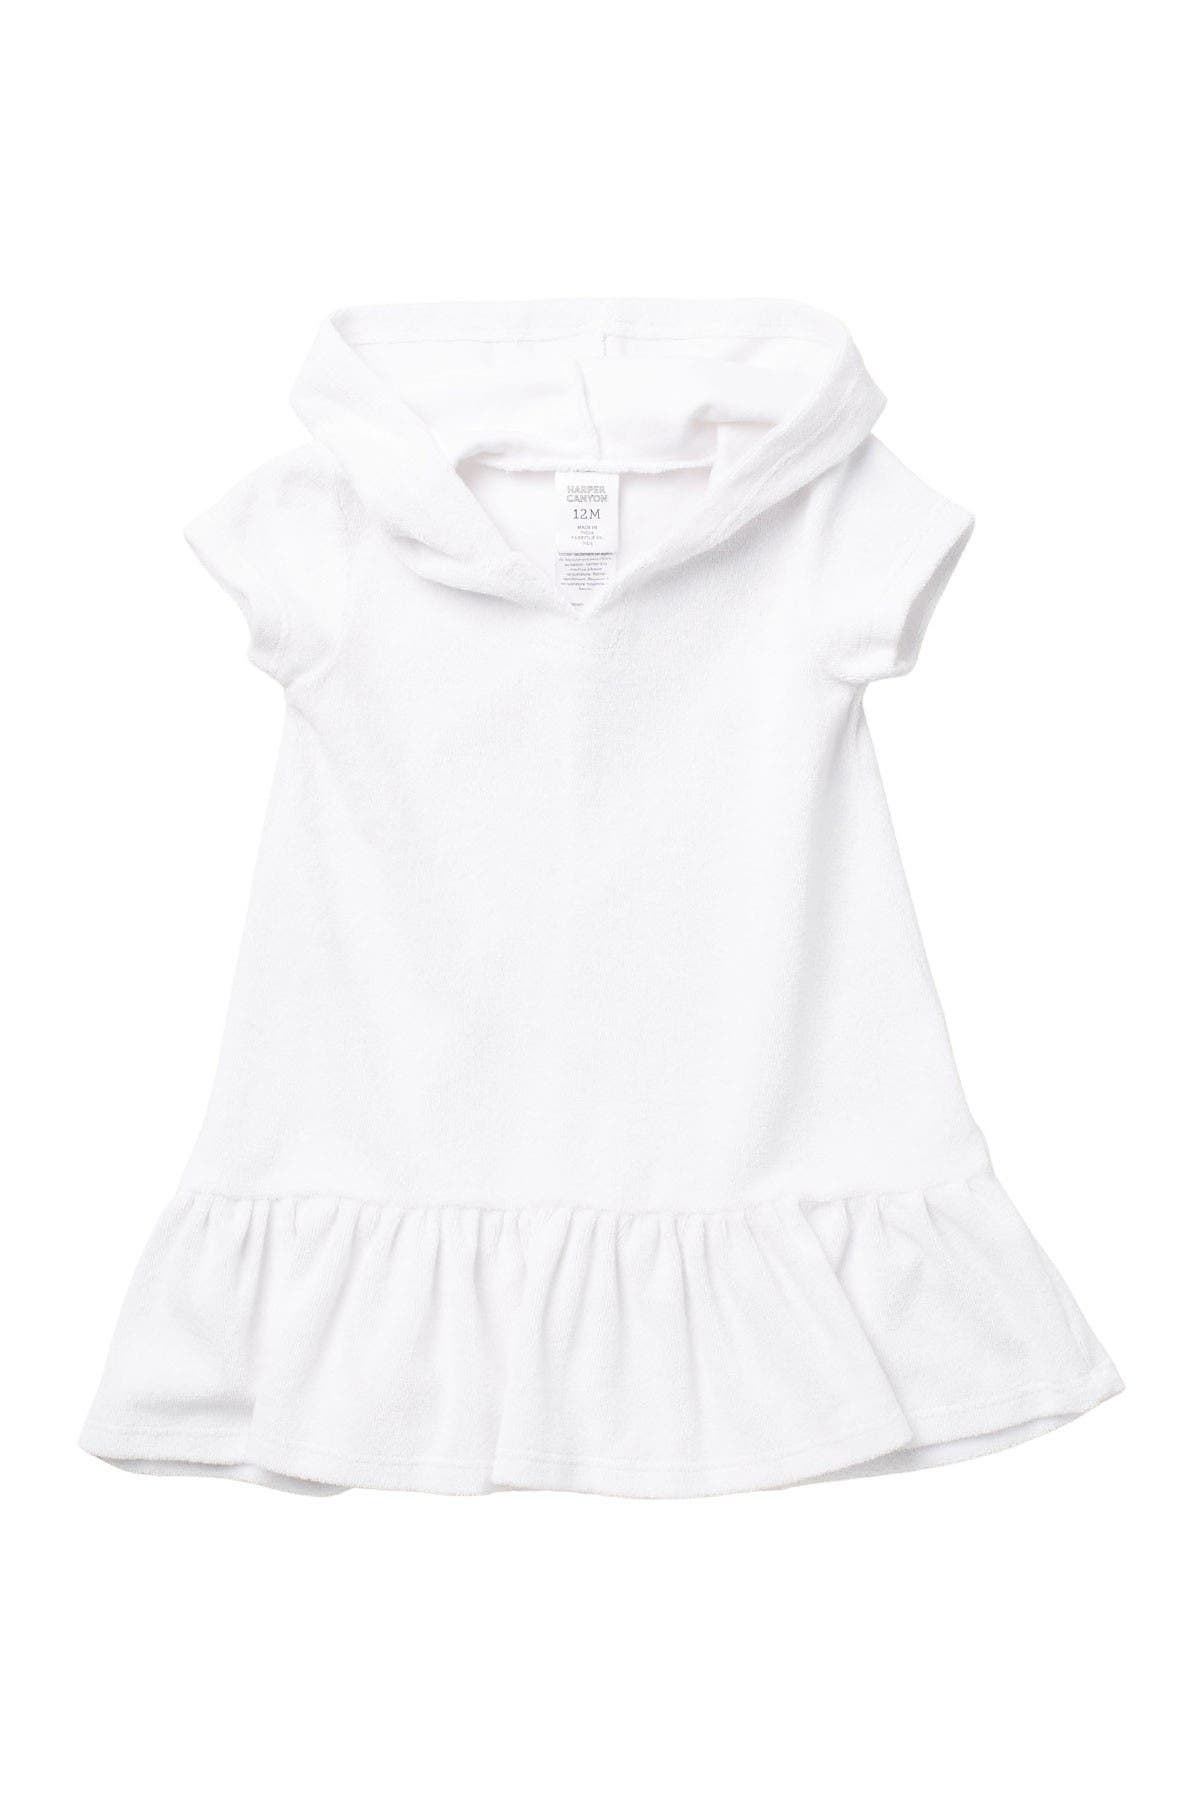 Image of Harper Canyon Hooded Toweling Cover-Up